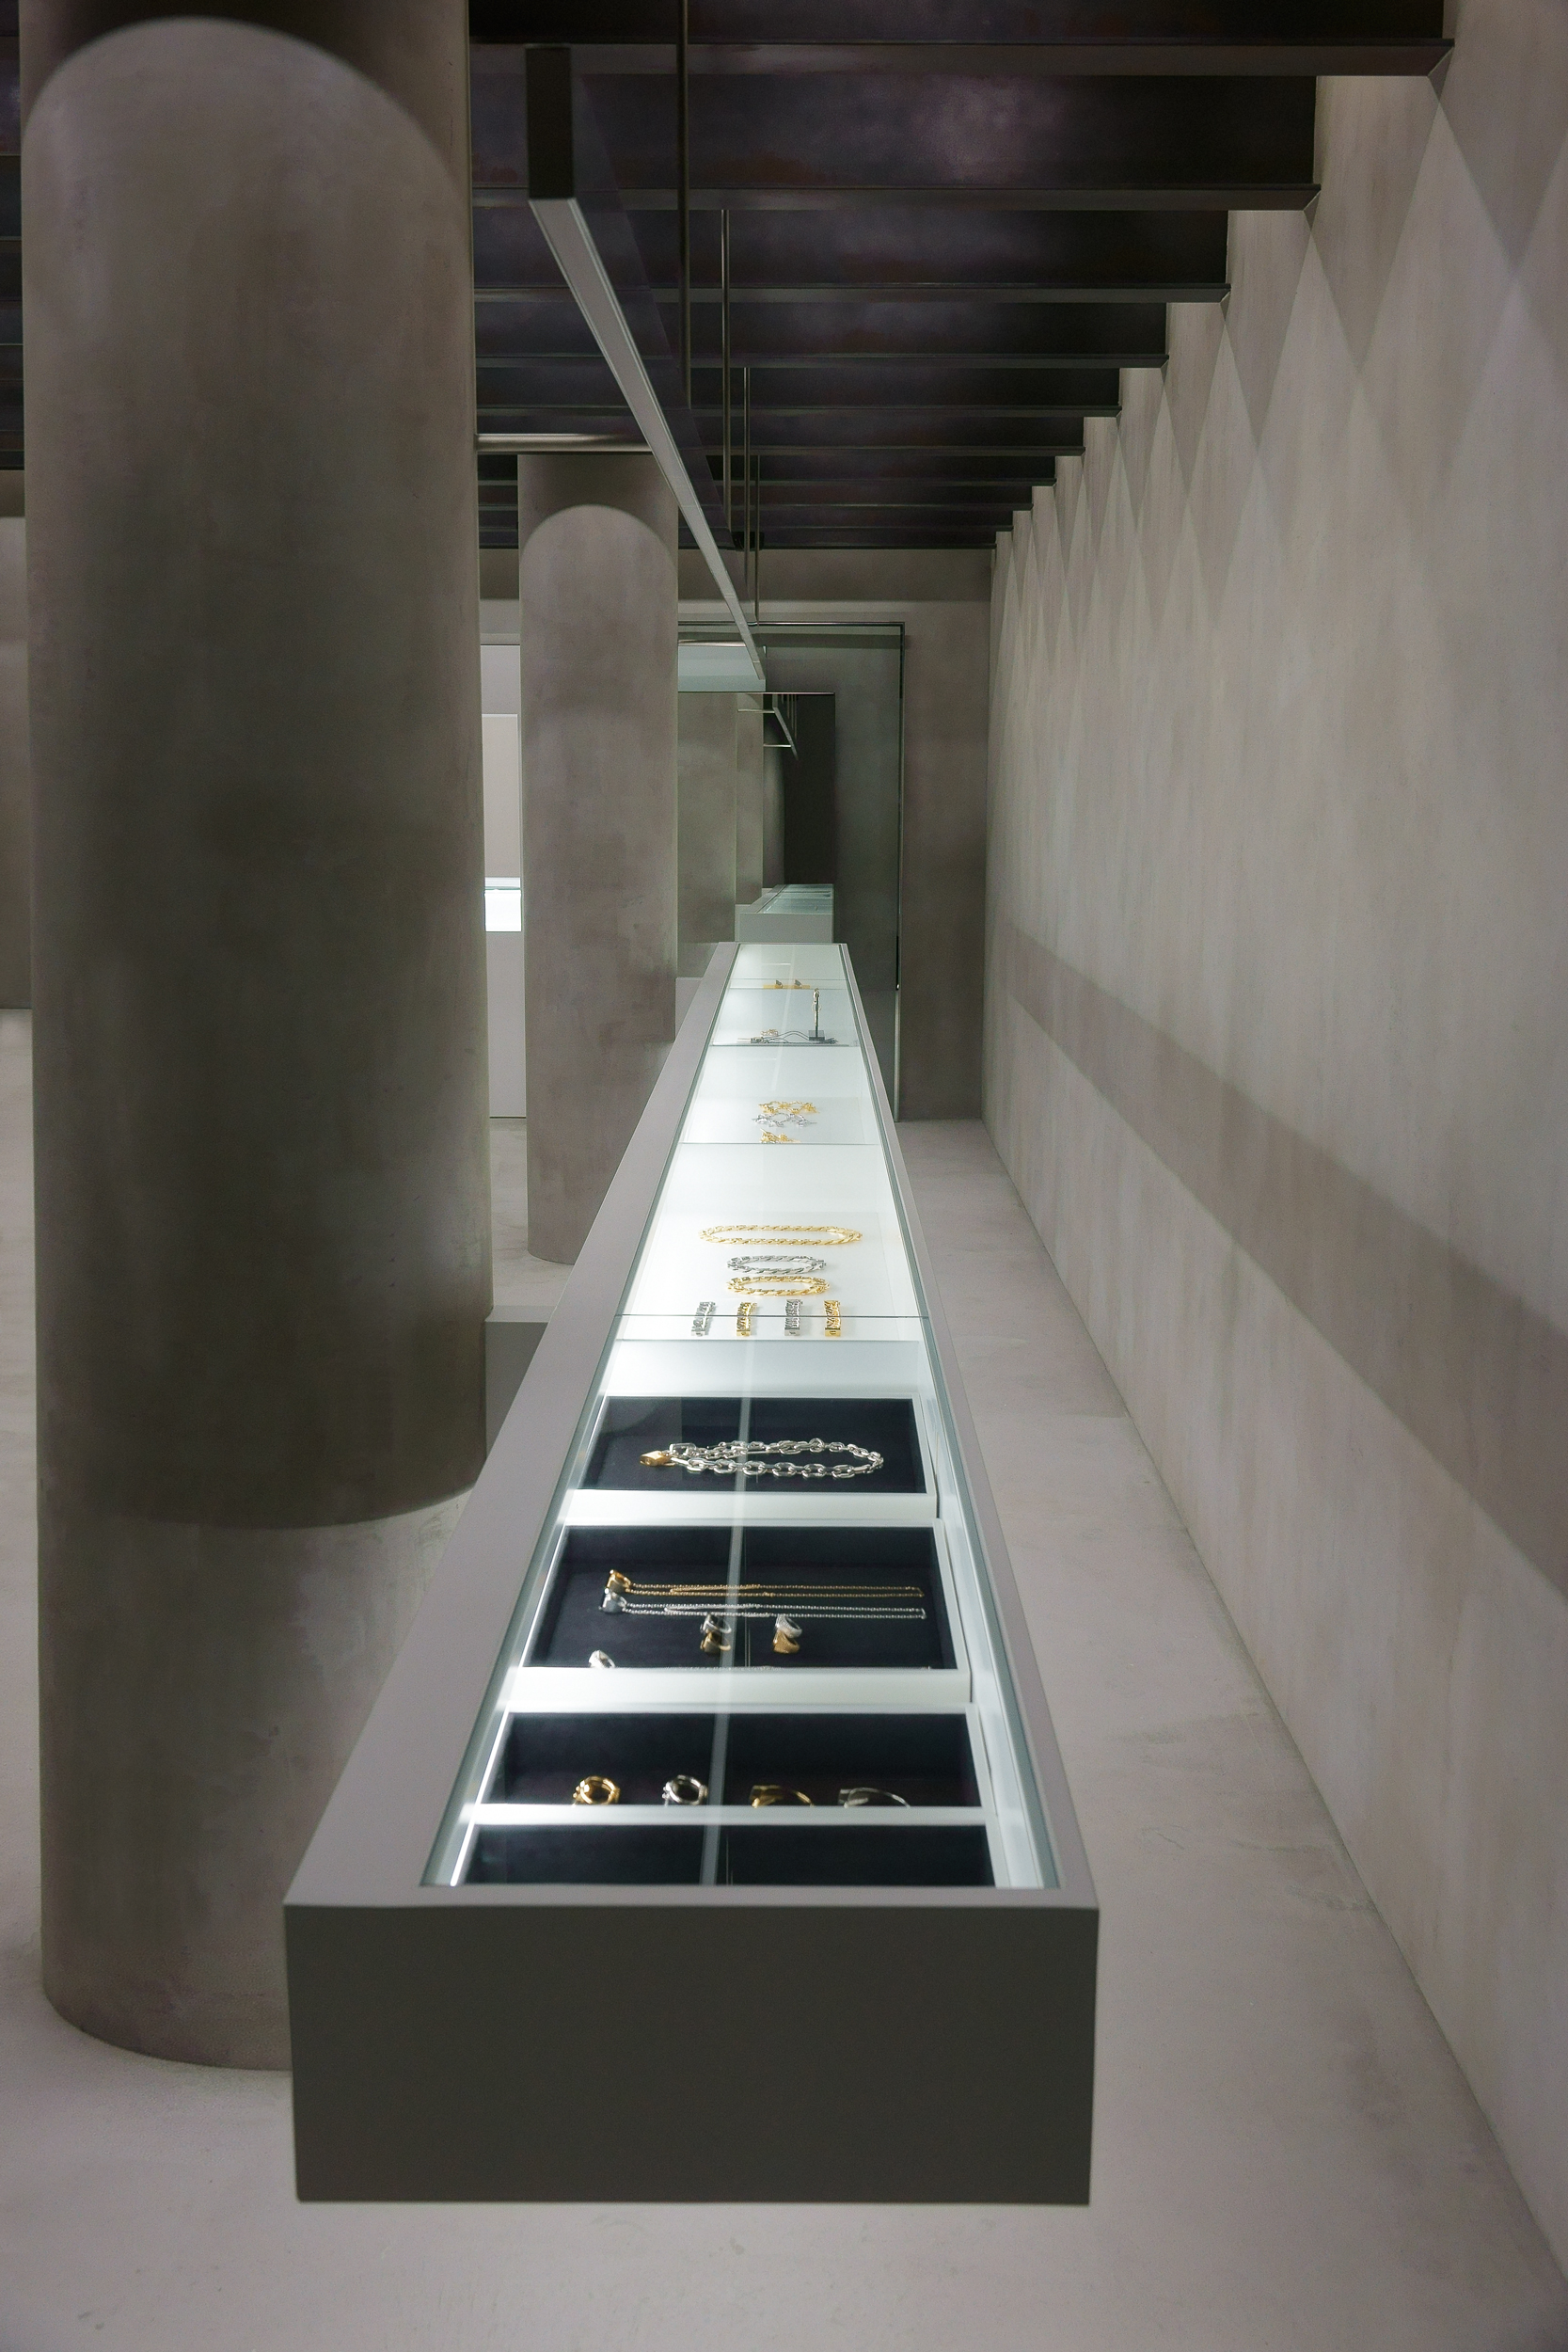 Ambush jewelry display within the brand store.